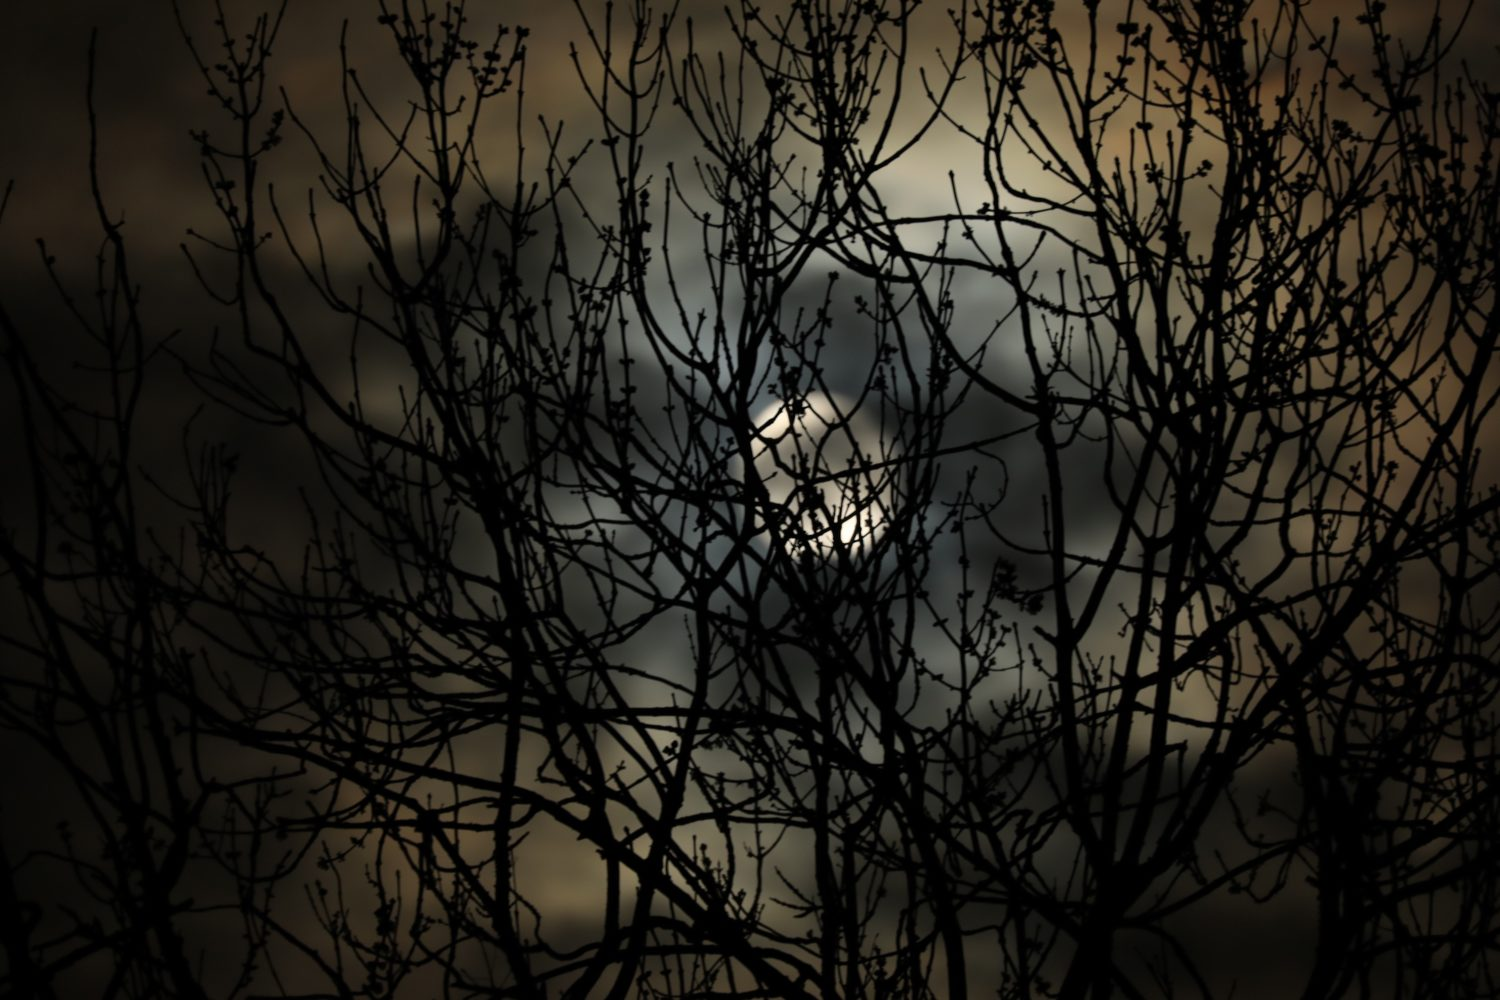 A full moon obscured by the branches of trees.